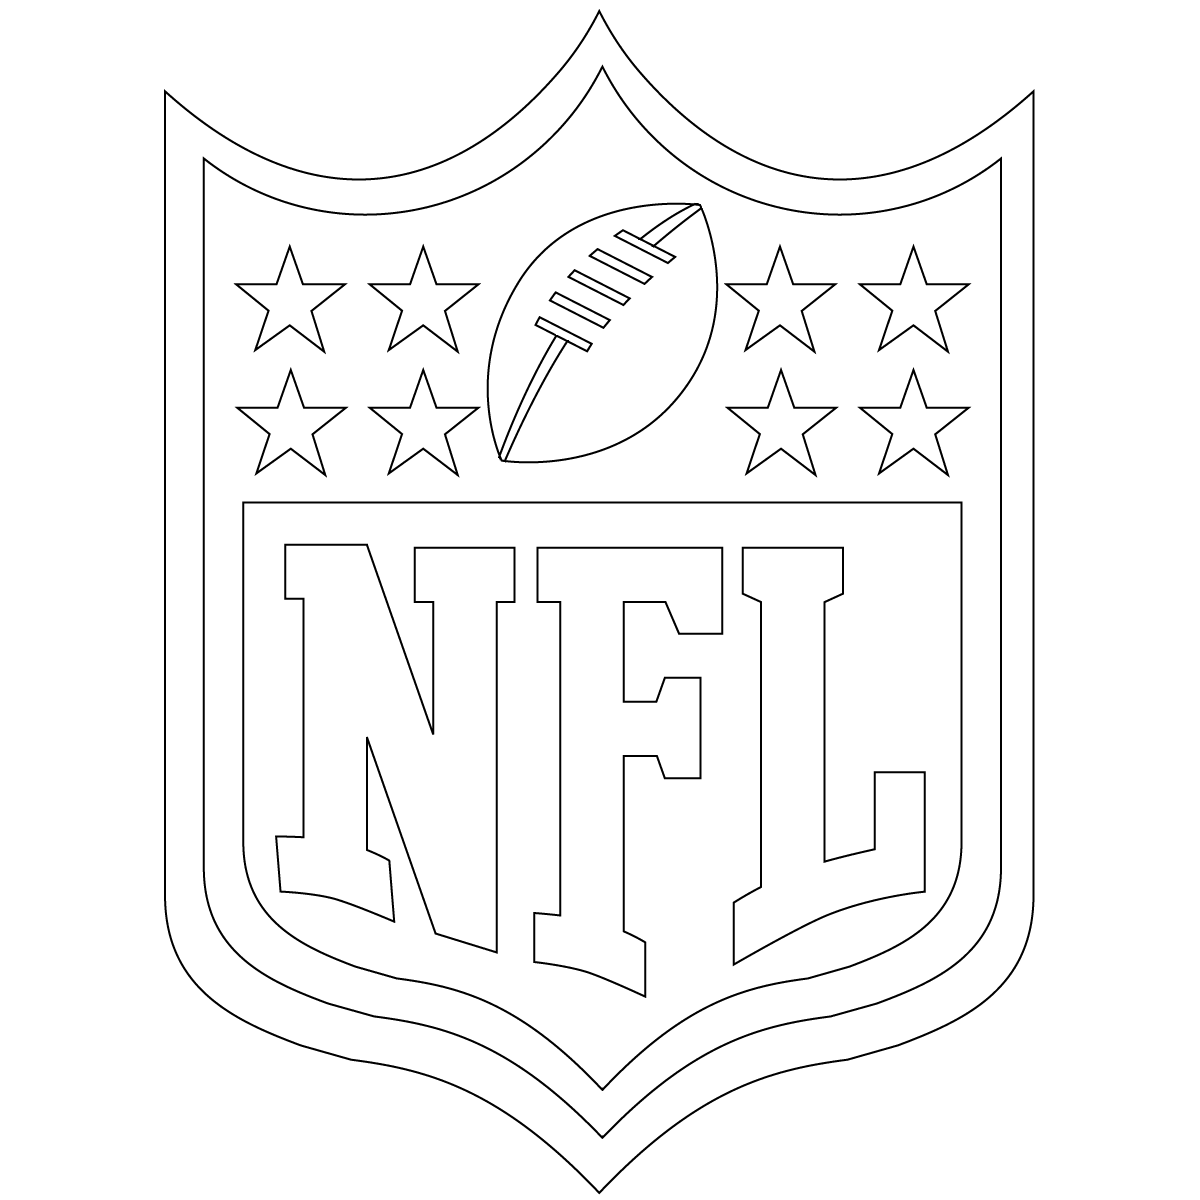 football images to colour football goalpost coloring pages learny kids to colour images football